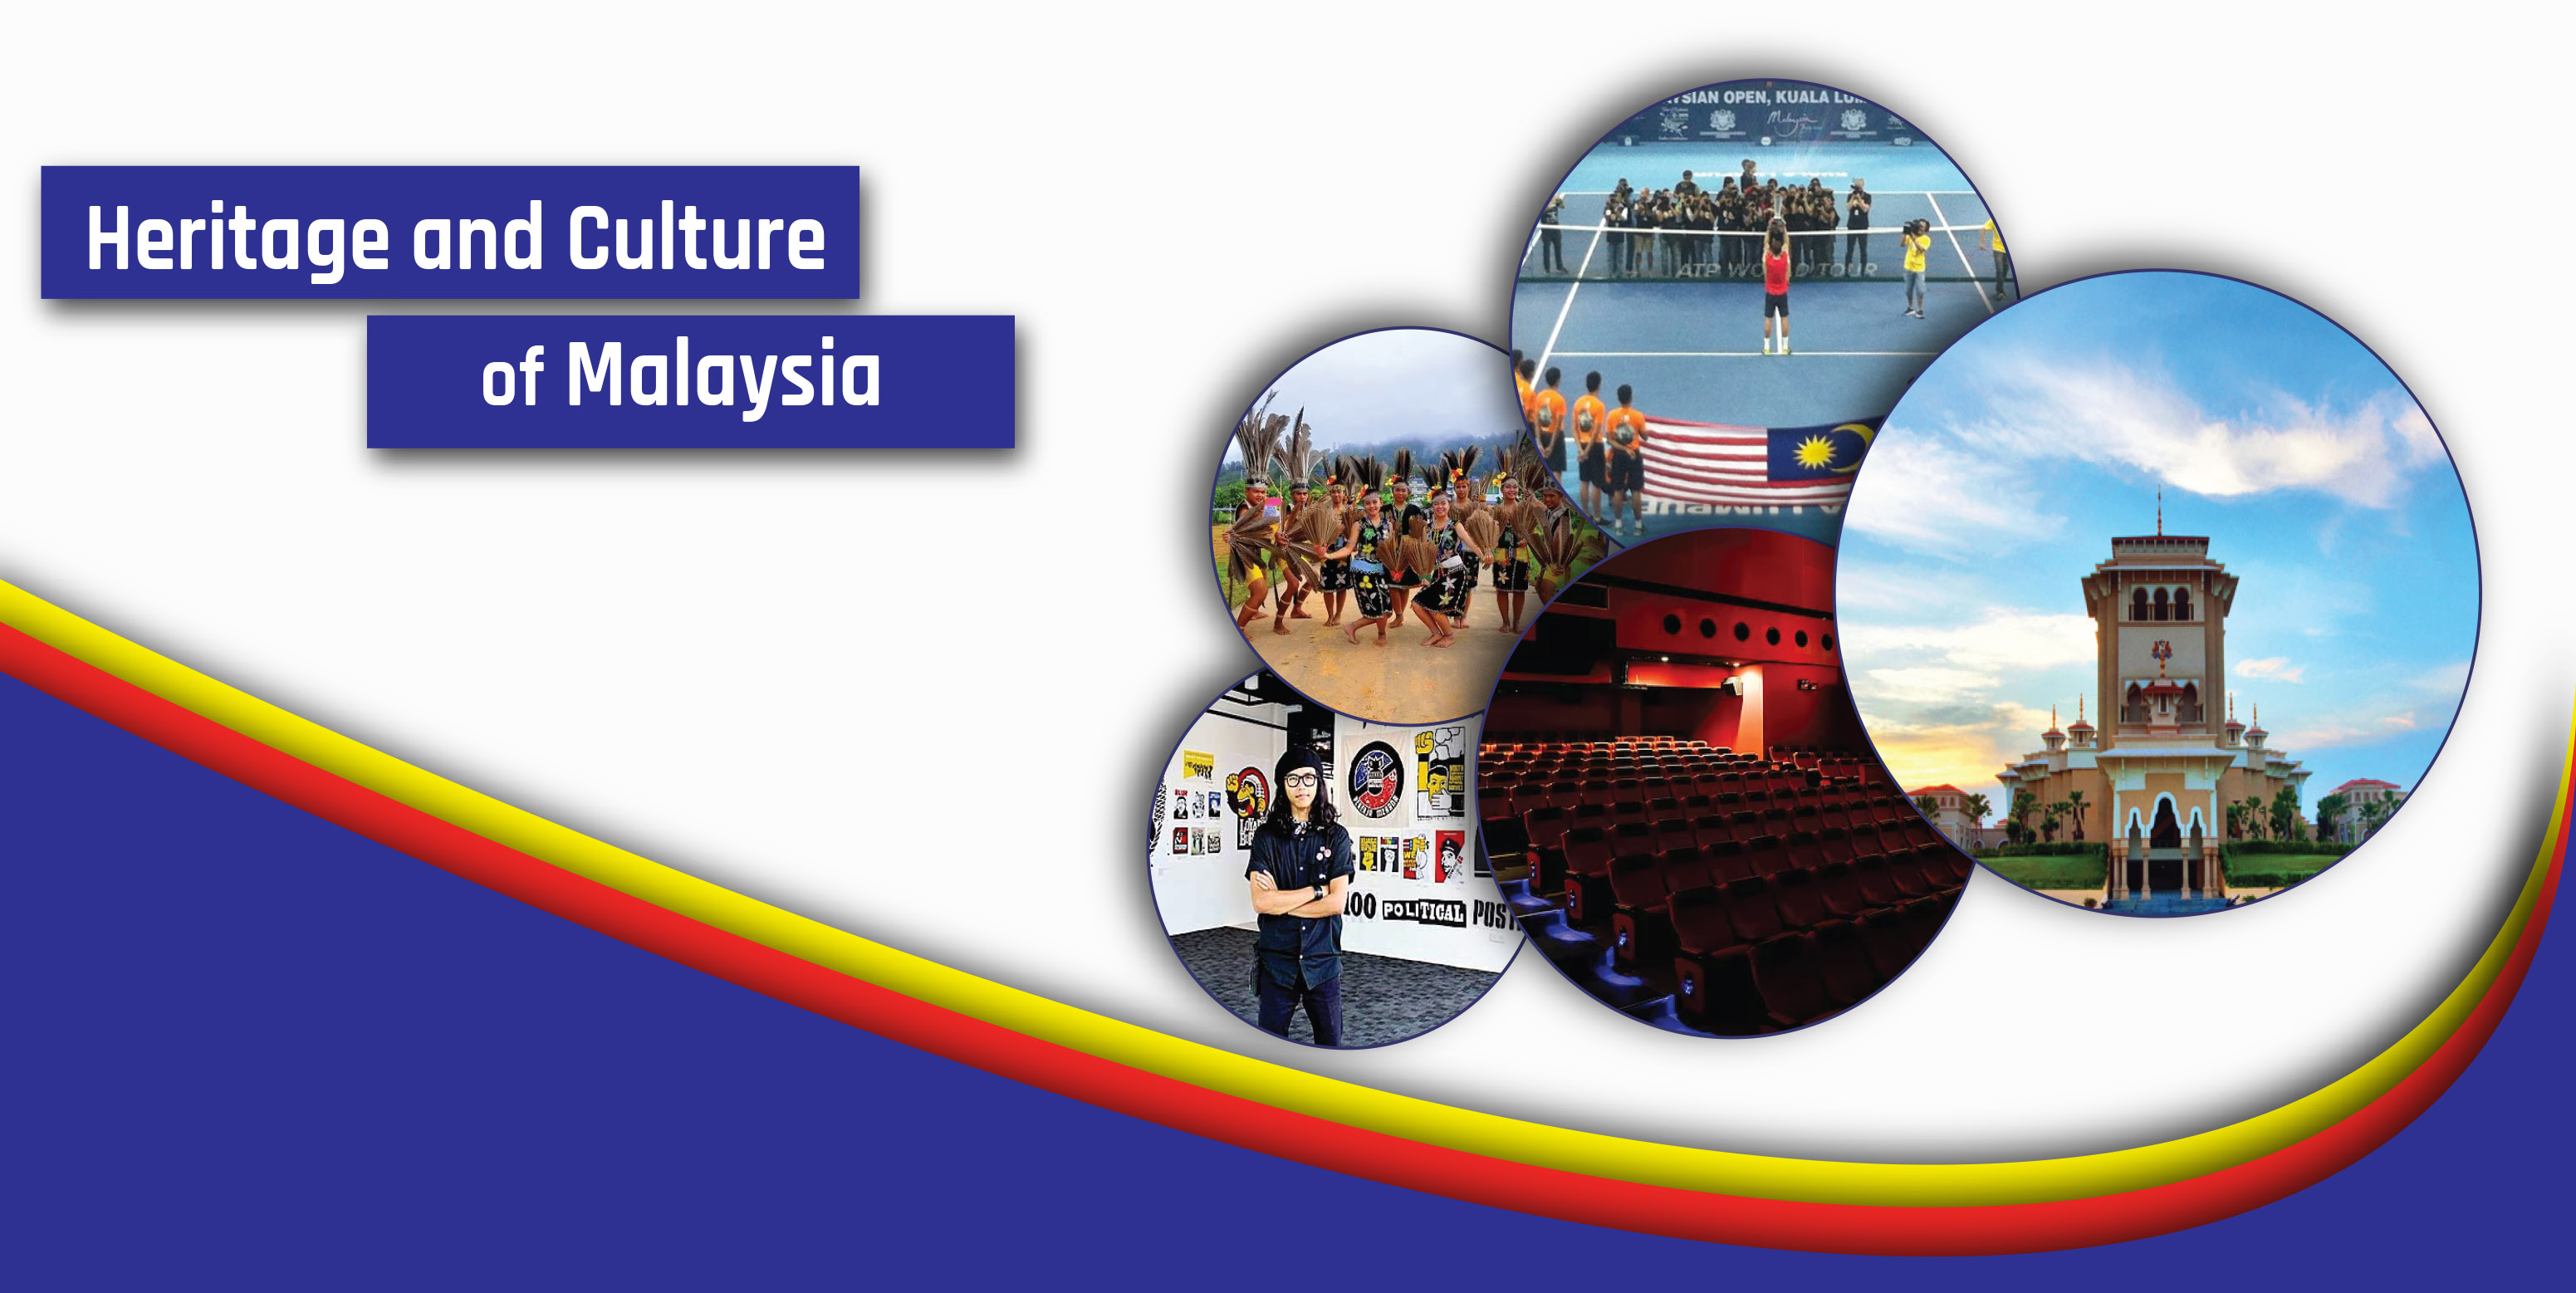 Heritage and Culture of Malaysia